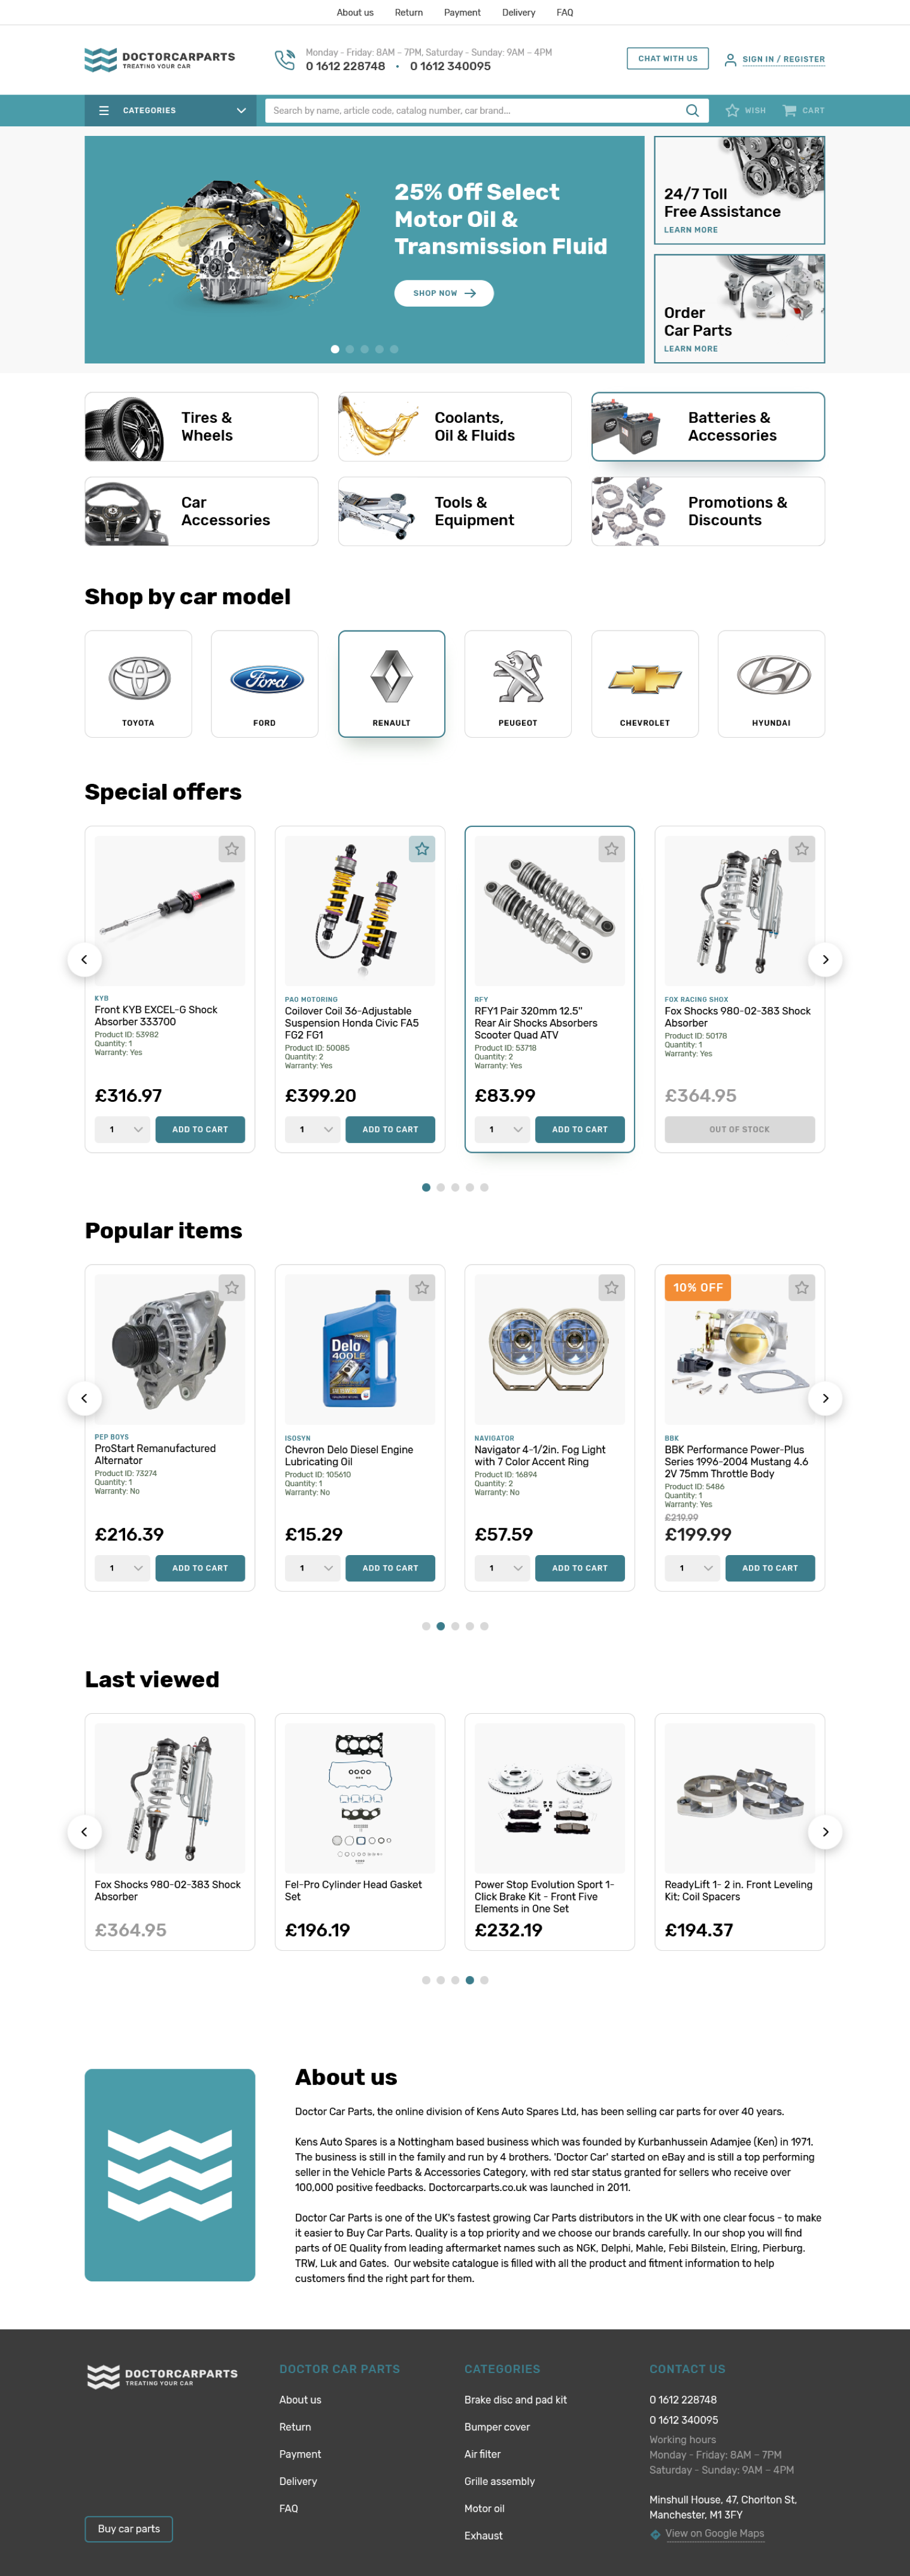 home page Doctorcarparts